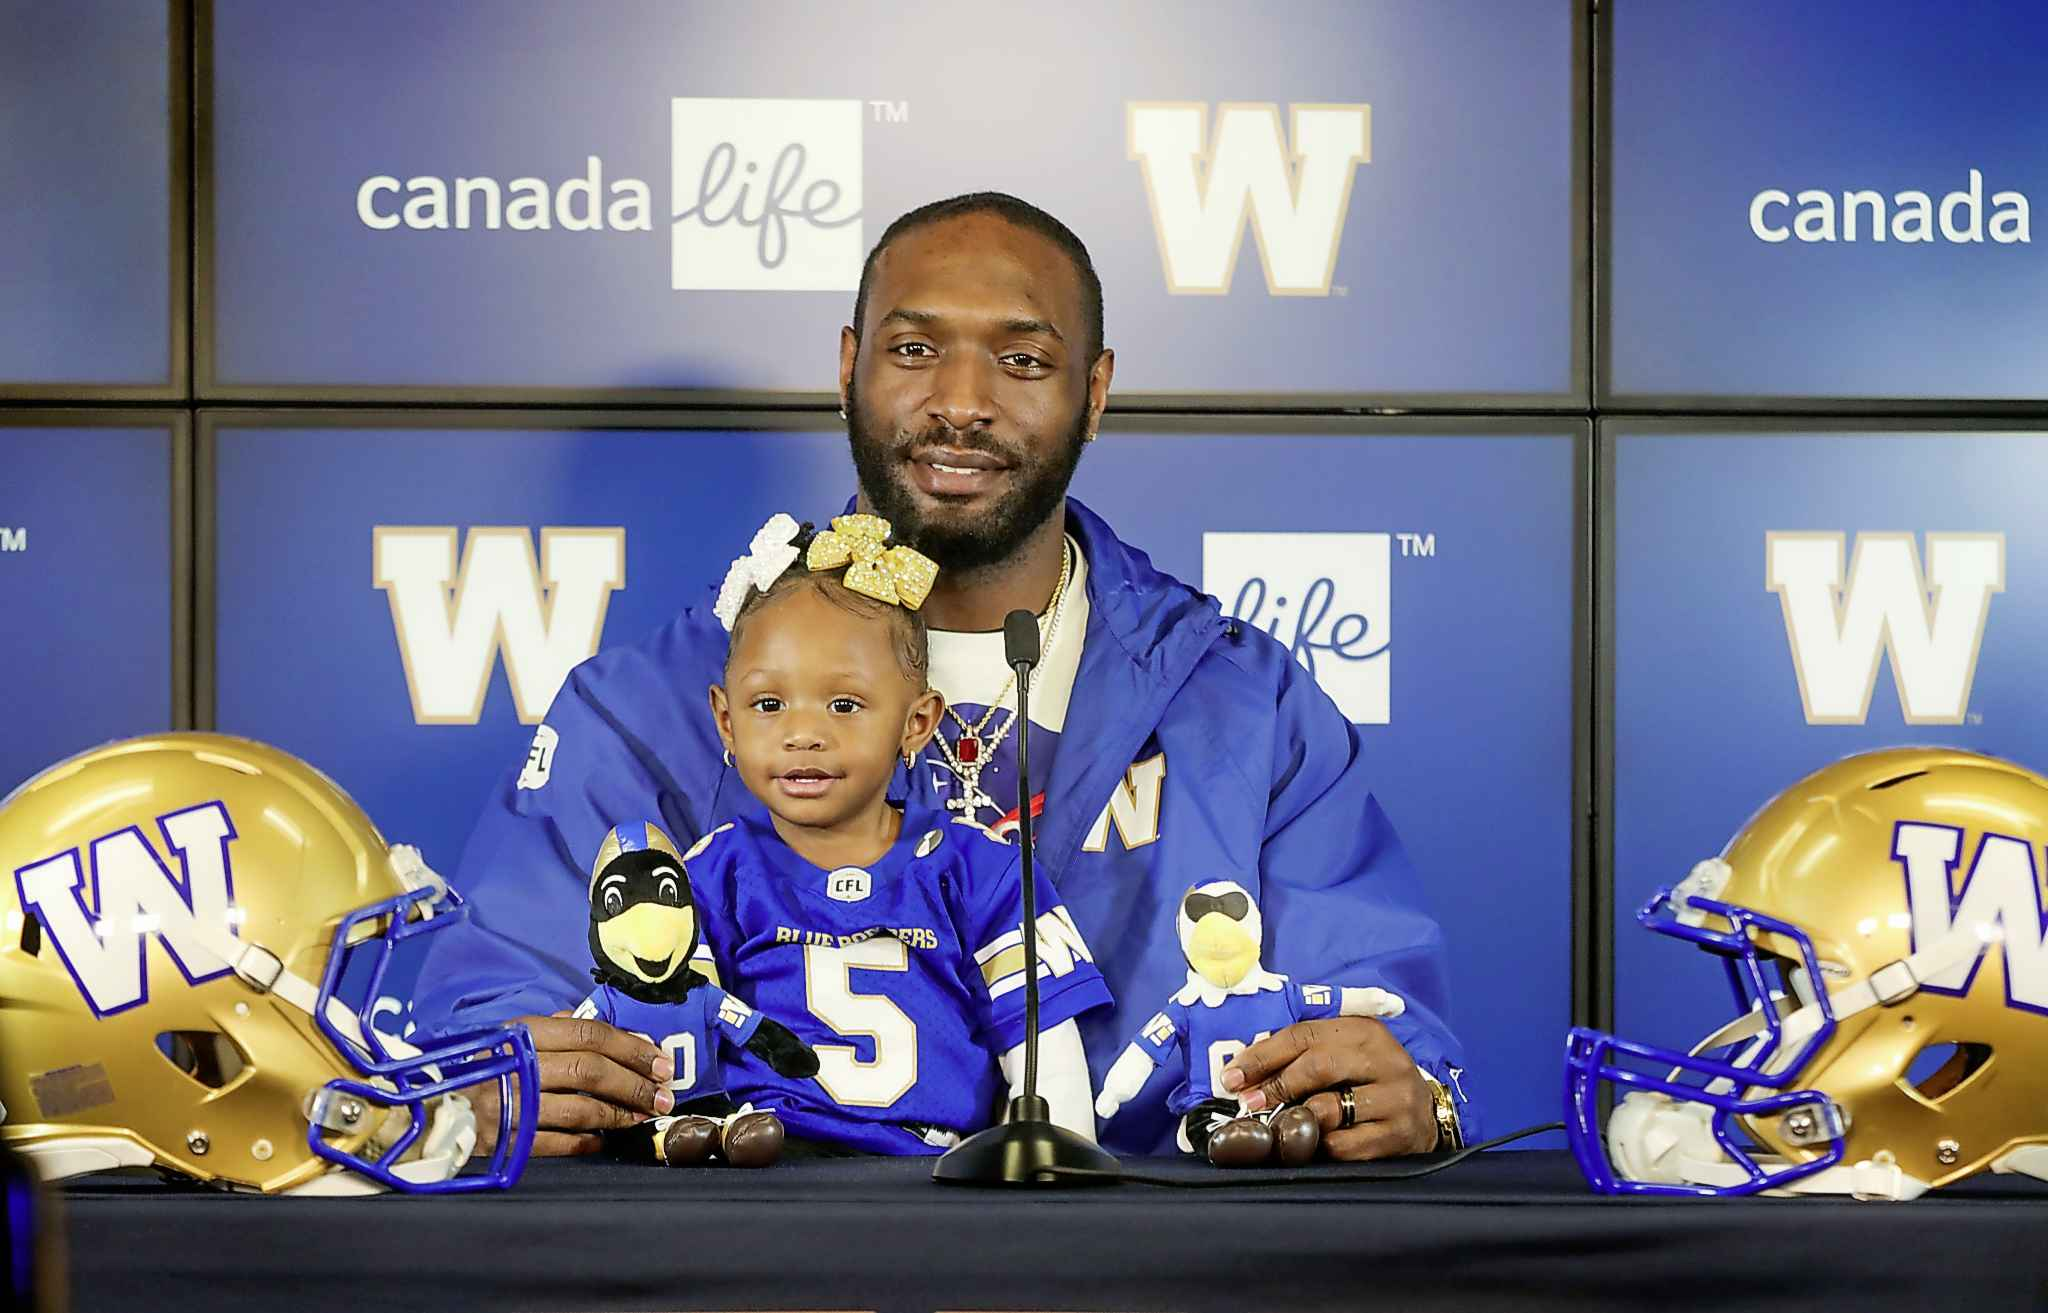 Blue Bombers' Willie Jefferson, with his daughter 22-month-old Kelley, answers questions from the media about signing on with the Bombers for another 2 seasons on Thursday.